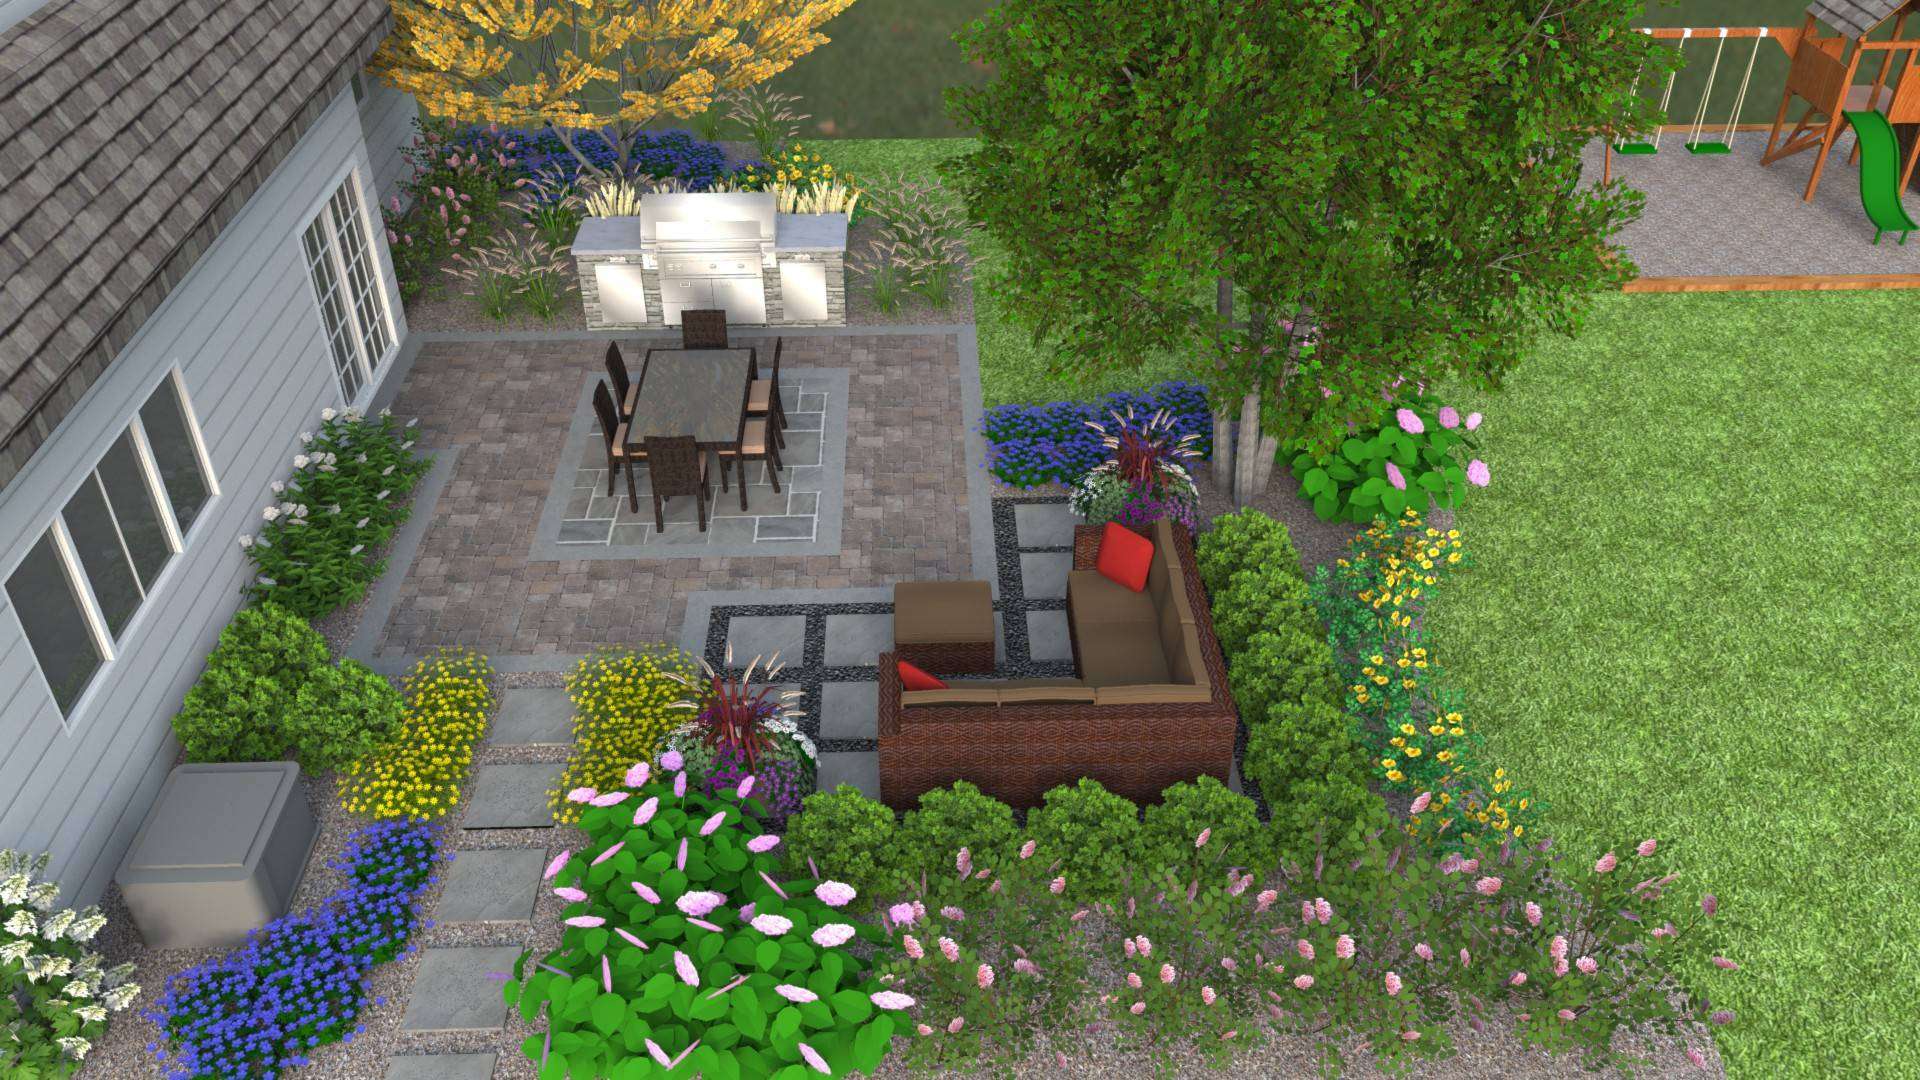 A new patio space with a built-in kitchen, along with a play area  for kids, will turn this yard into a great place to entertain.